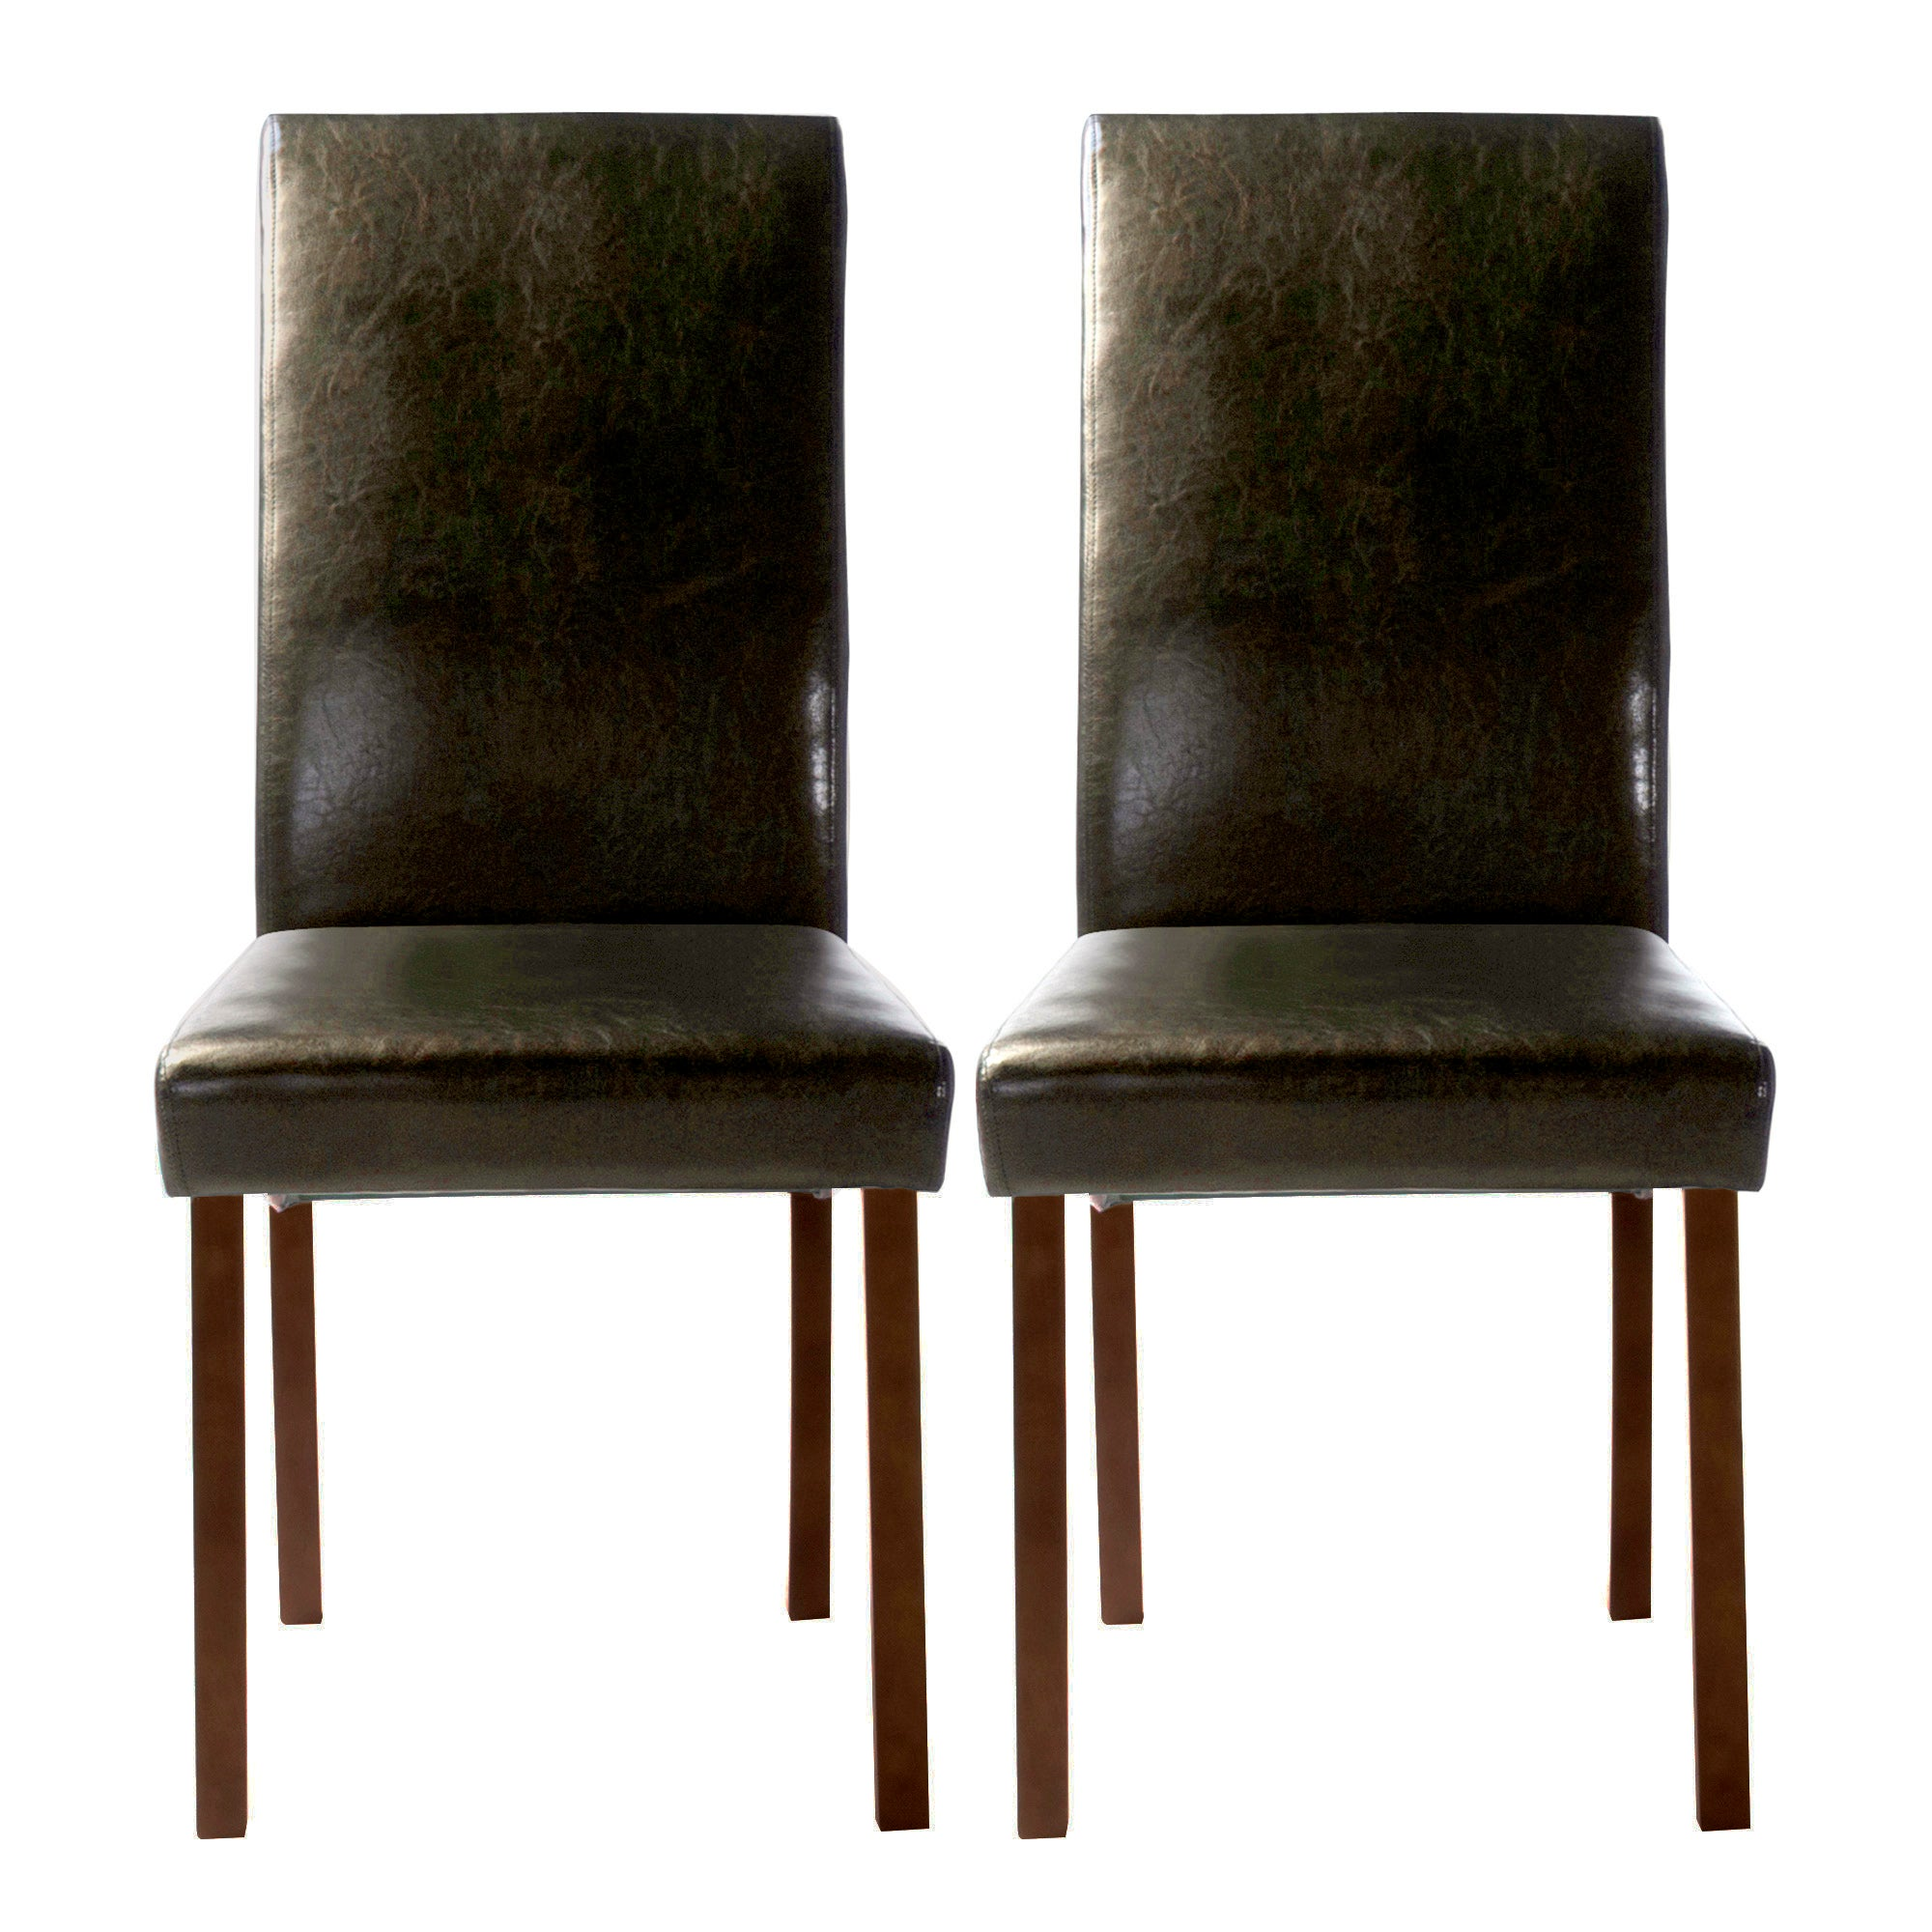 Hunston Black Faux Leather Pair of Dining Chairs